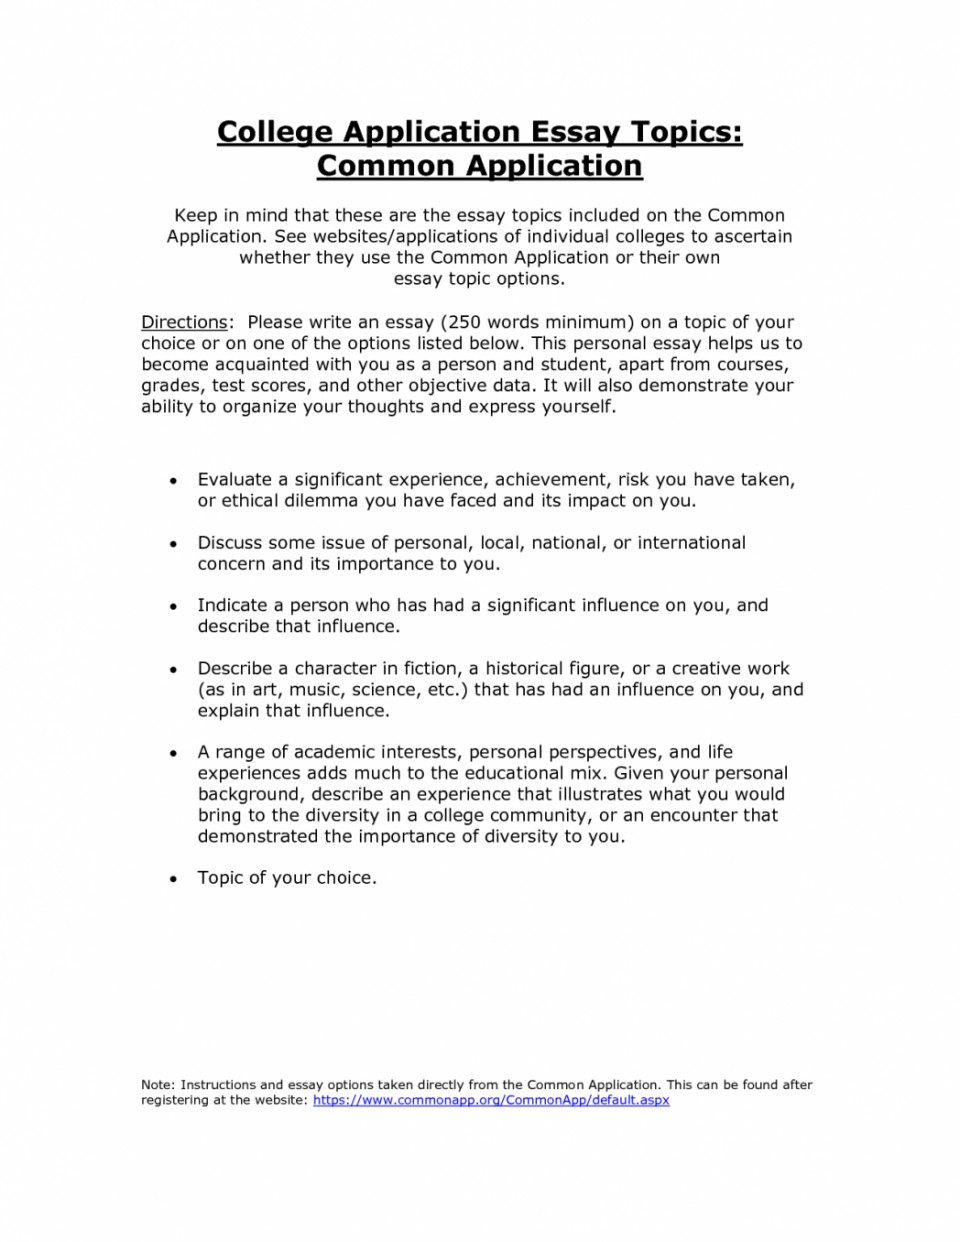 005 College Application Essay Questions Vatoz Atozdevelopment Co Jianbochencom L Topics Common App Prompts 1048x1356 Staggering Topic Examples 960